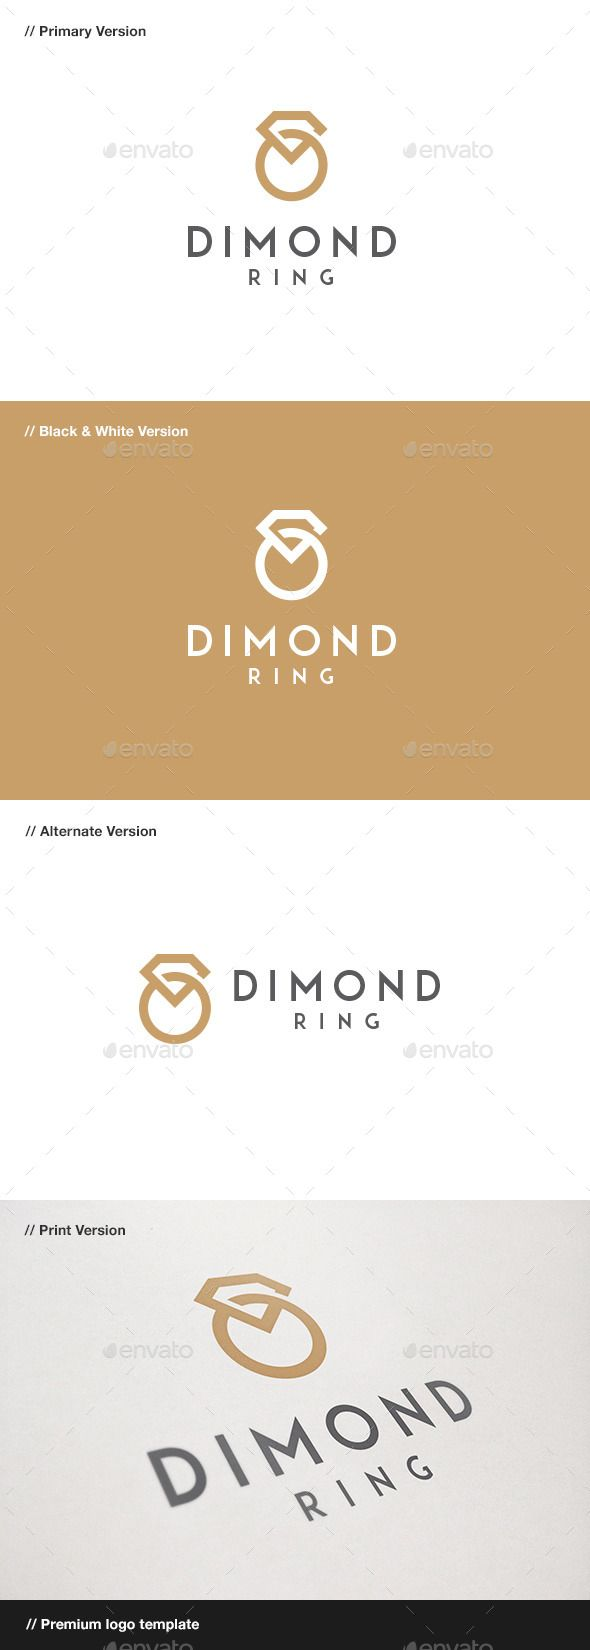 Diamond Ring Jewelry  - Logo Design Template Vector #logotype Download it here: http://graphicriver.net/item/diamond-ring-jewelry-logo/9222381?s_rank=969?ref=nesto